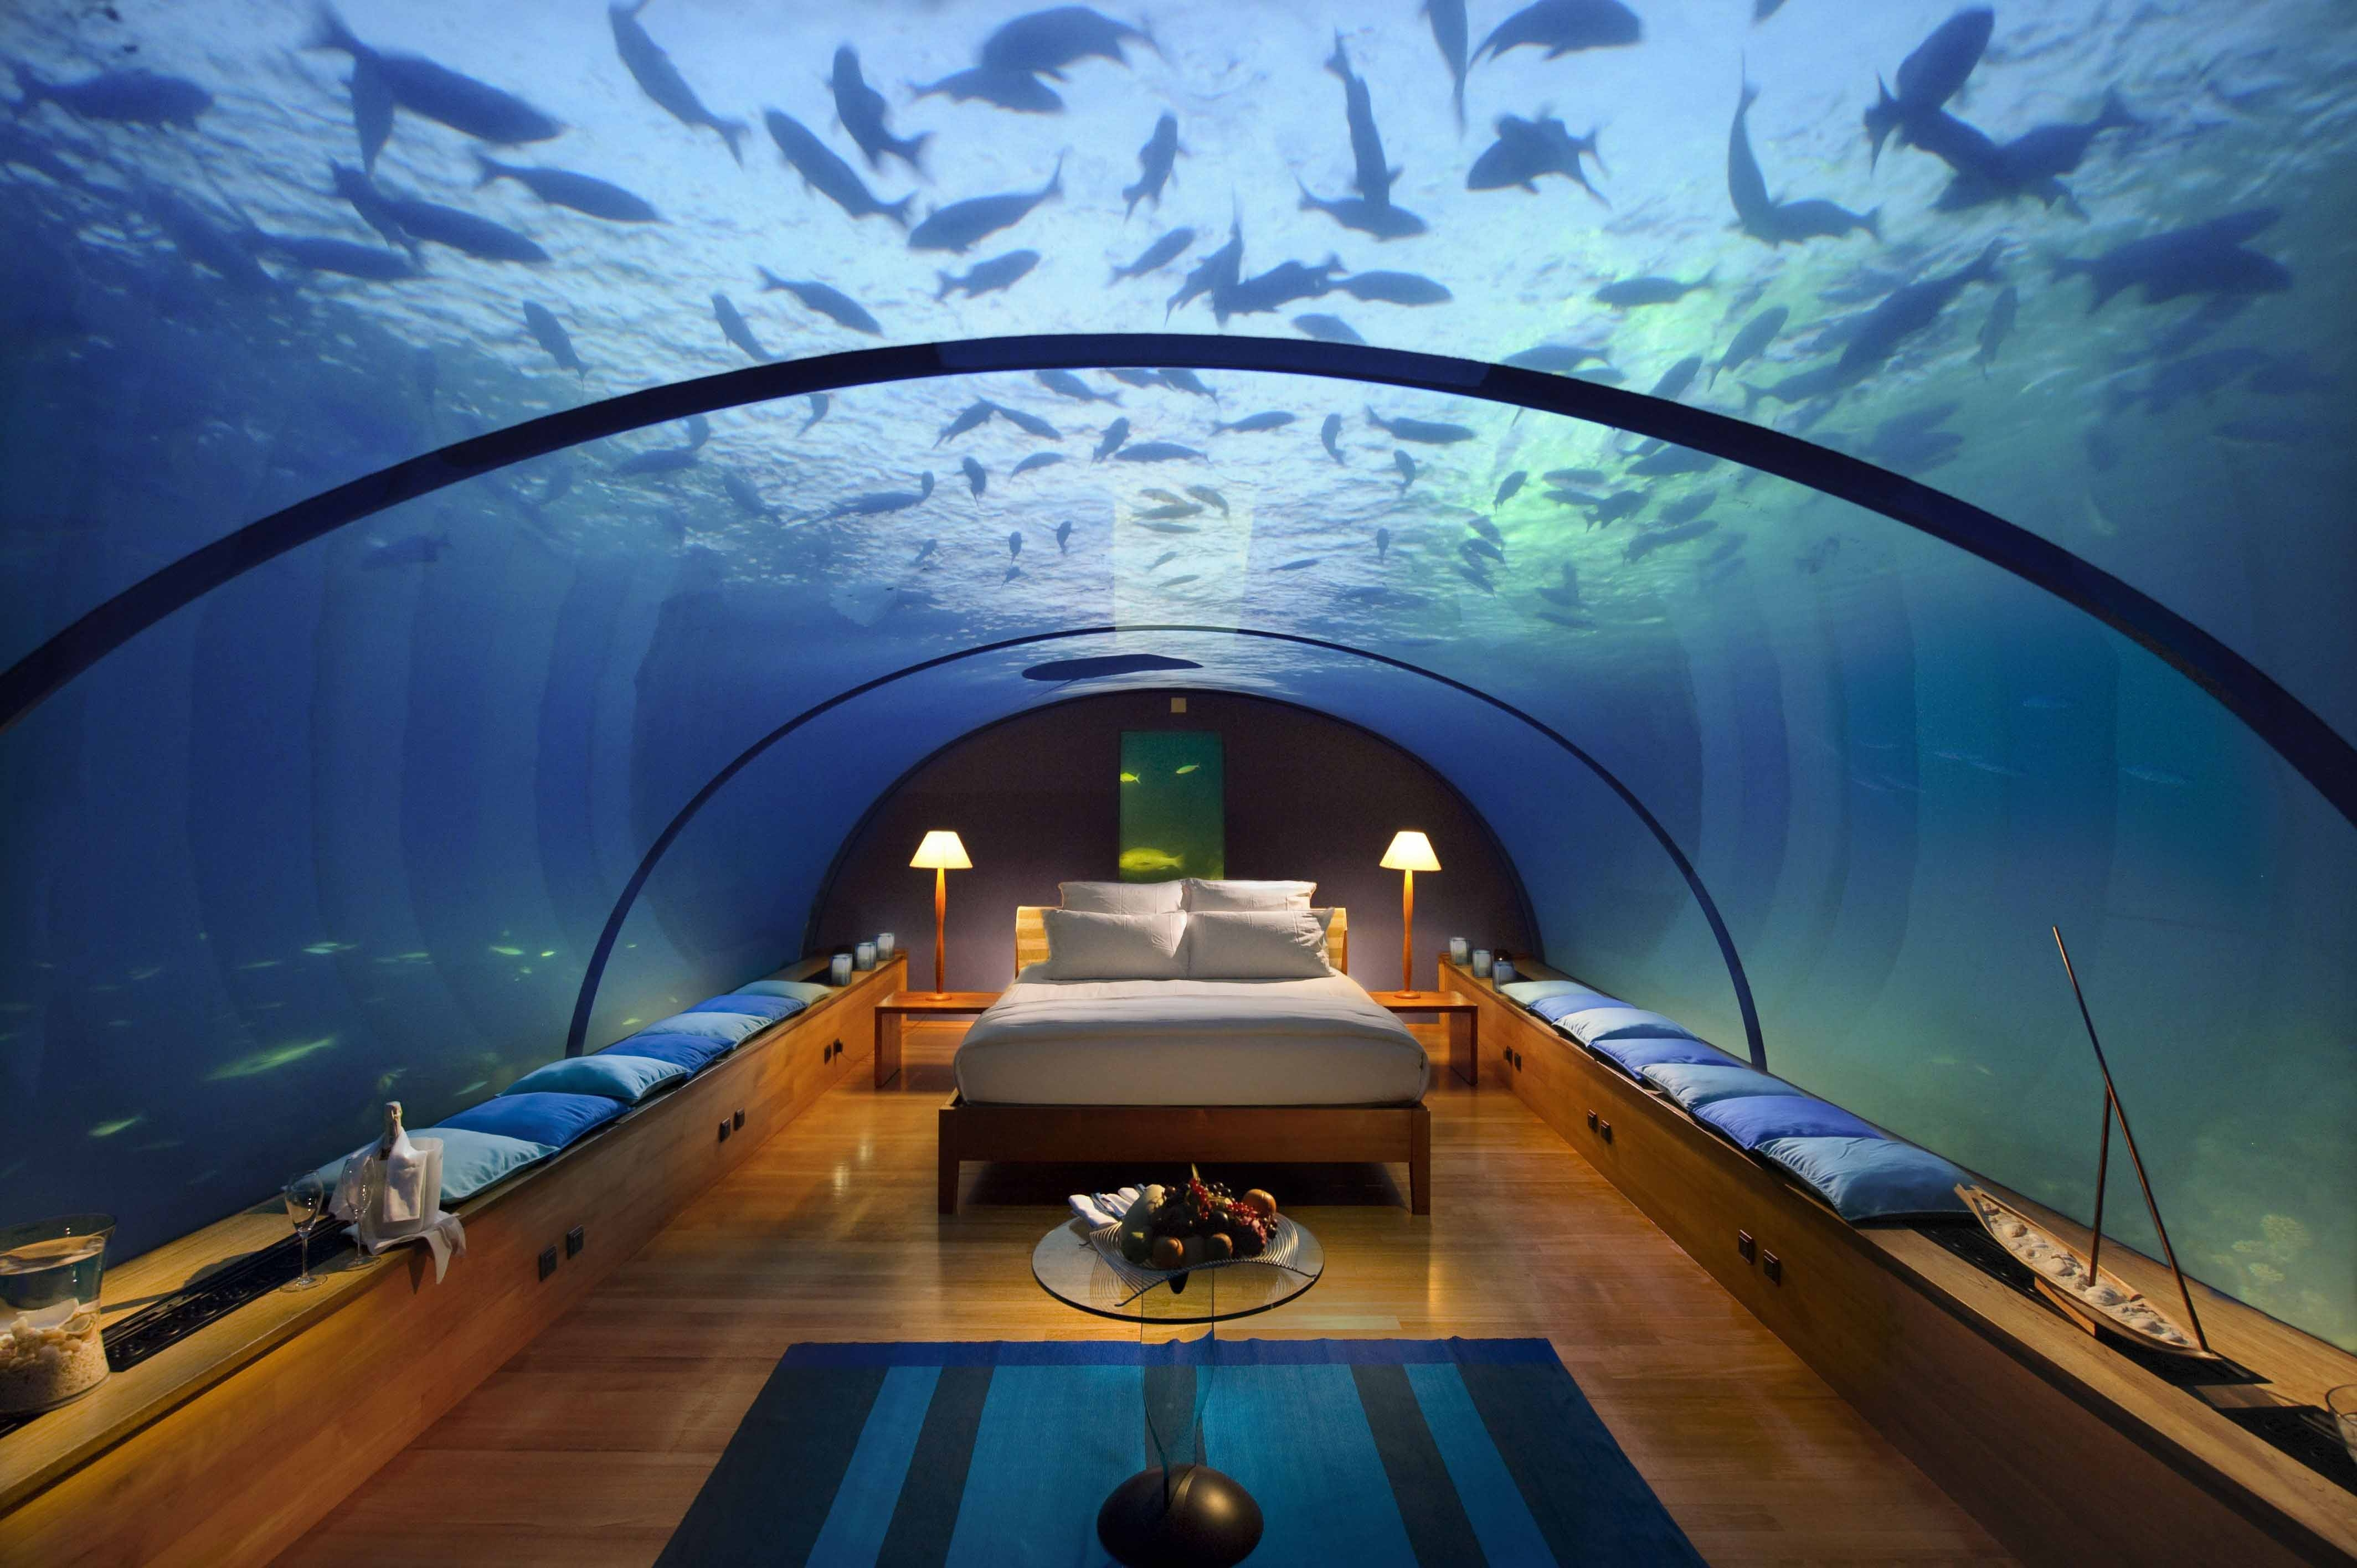 74415 download wallpaper Miscellanea, Miscellaneous, Maldives, Tropics, Underwater Hotel screensavers and pictures for free